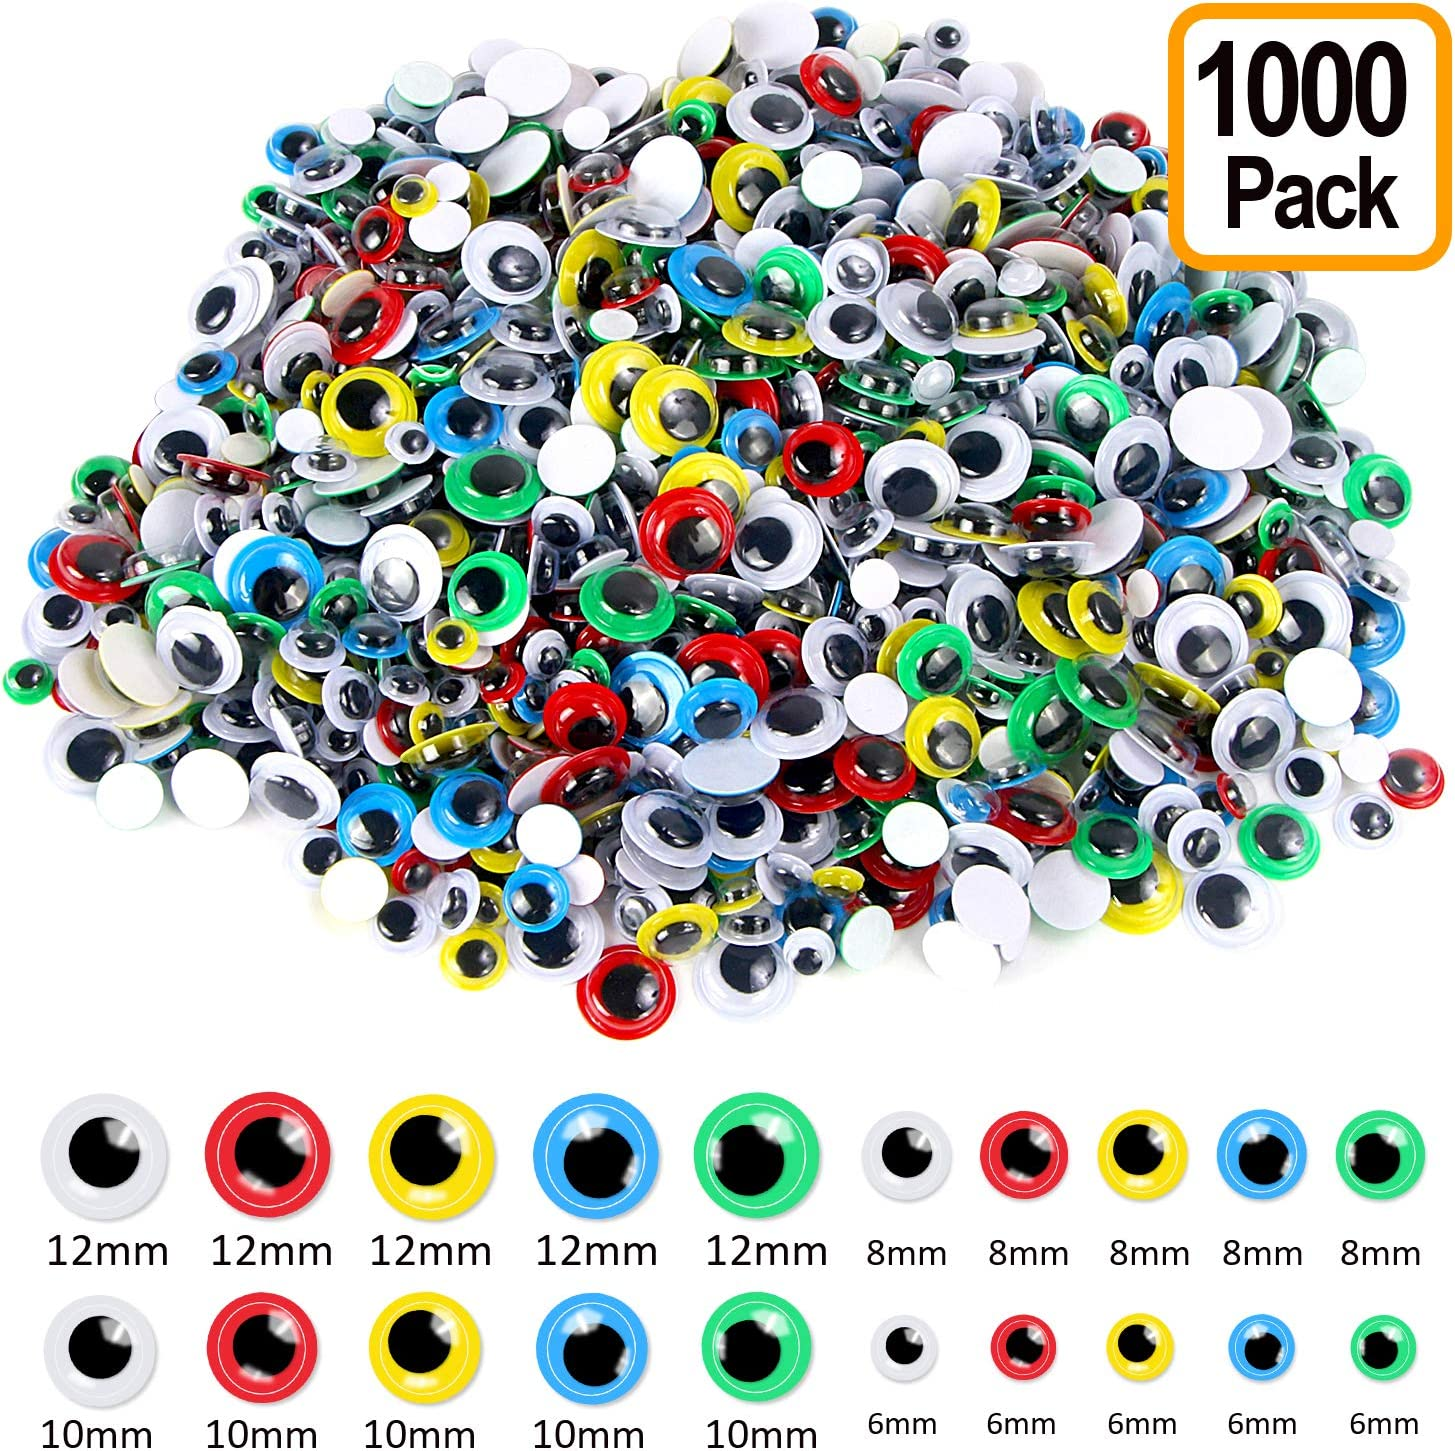 Upins 1000pcs Round Plastic Craft Wiggle Eyes Self-Adhesive Googly Eyes with Different Colors and Sizes for DIY Craft